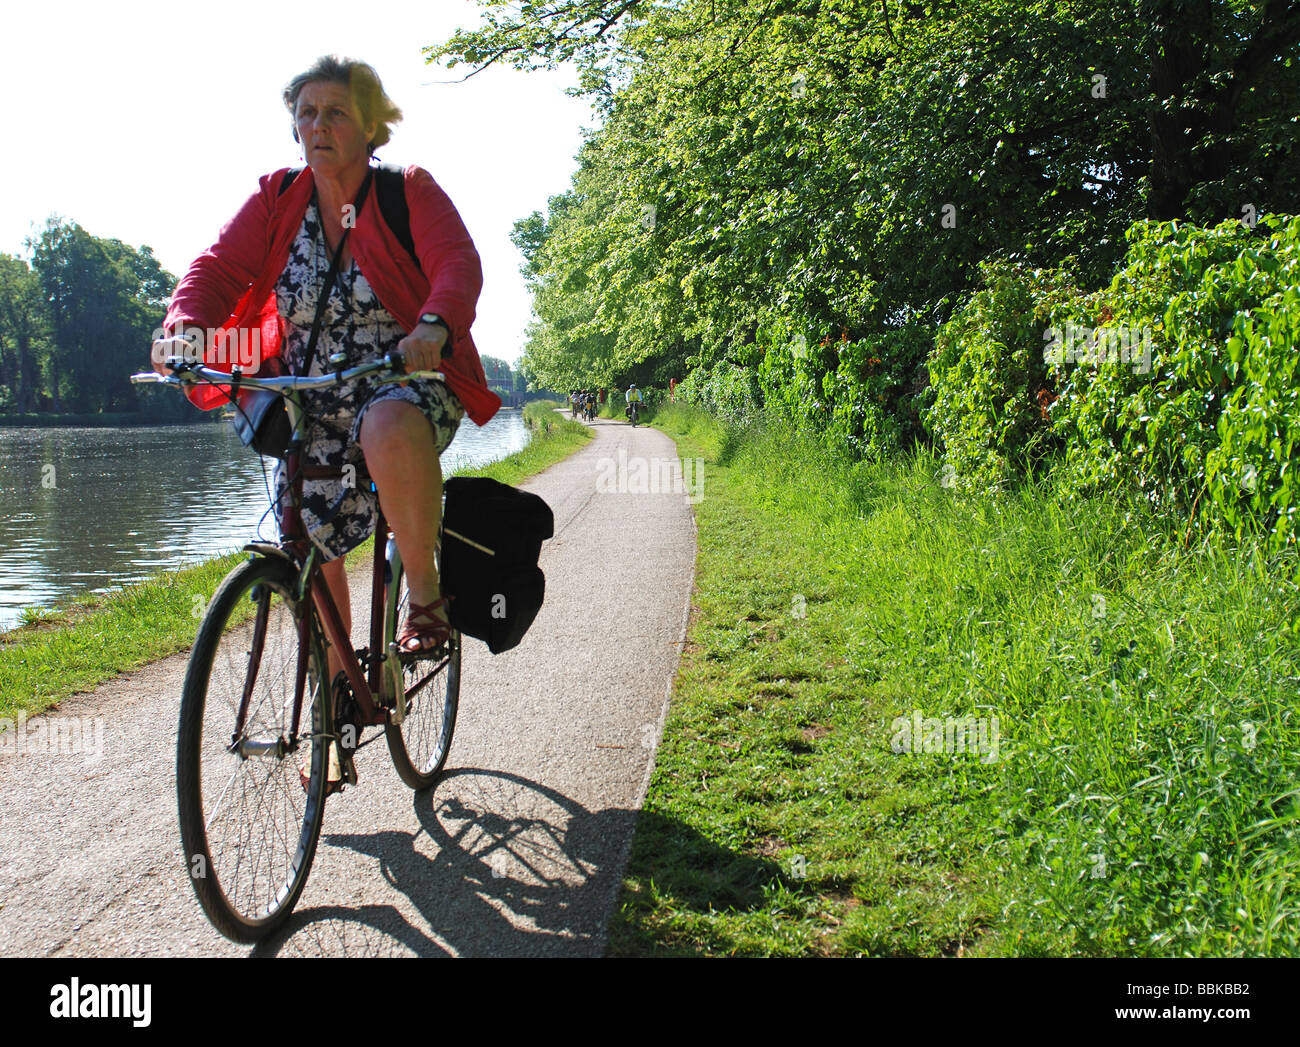 Cyclist on River Thames towpath ,Oxford, Oxfordshire, England, UK - Stock Image